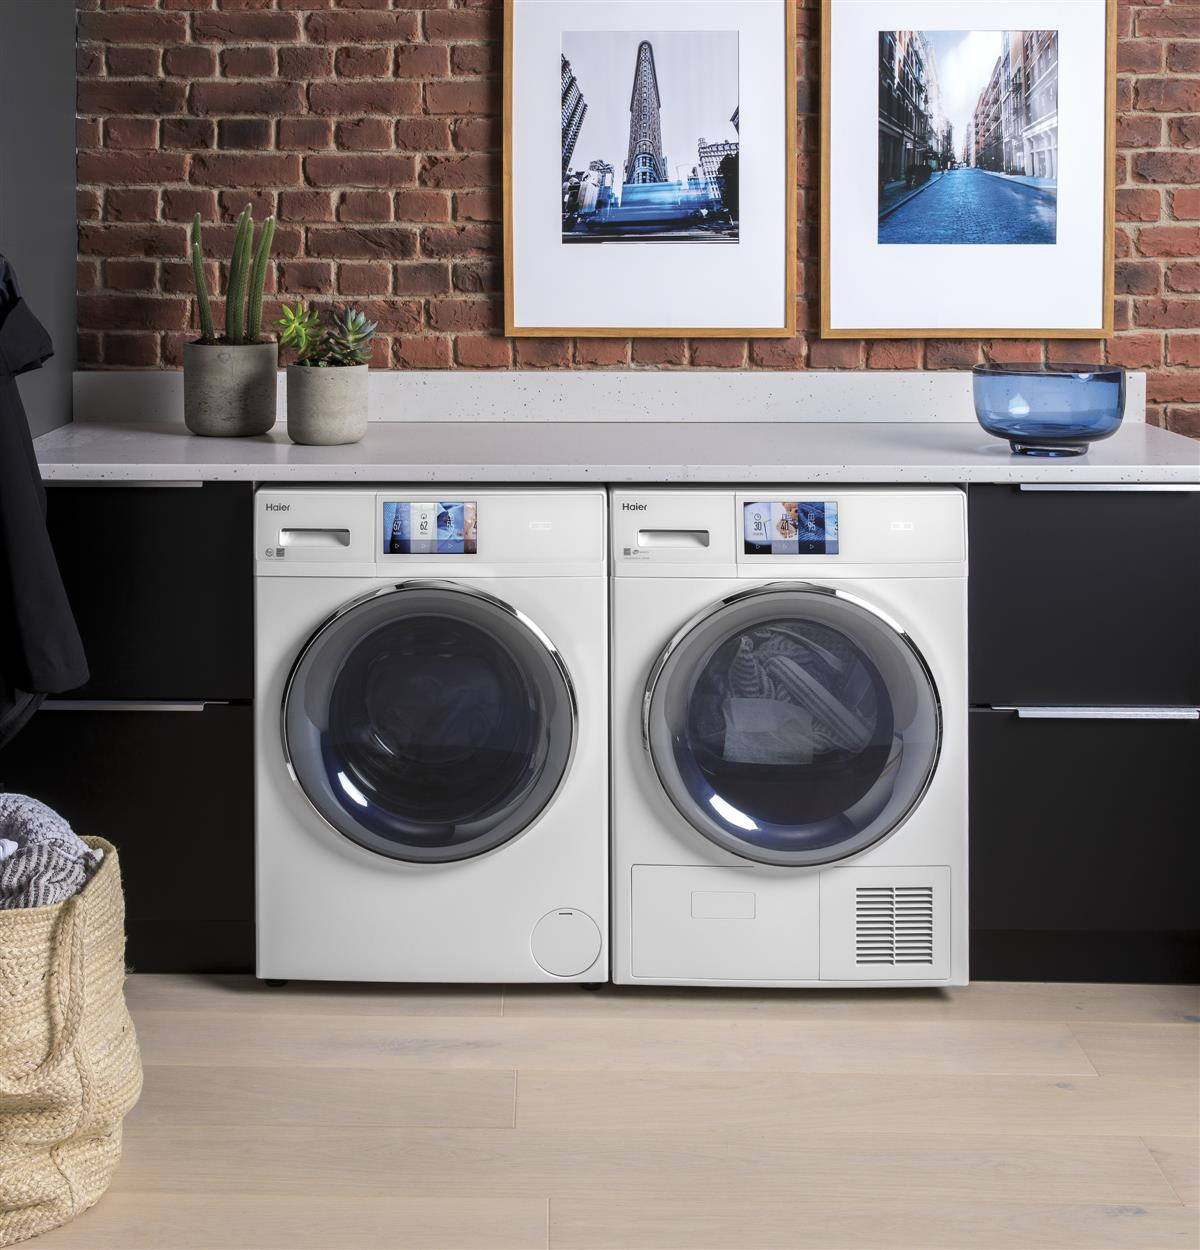 Unique size for installation flexibility and large capacity to do laundry less often